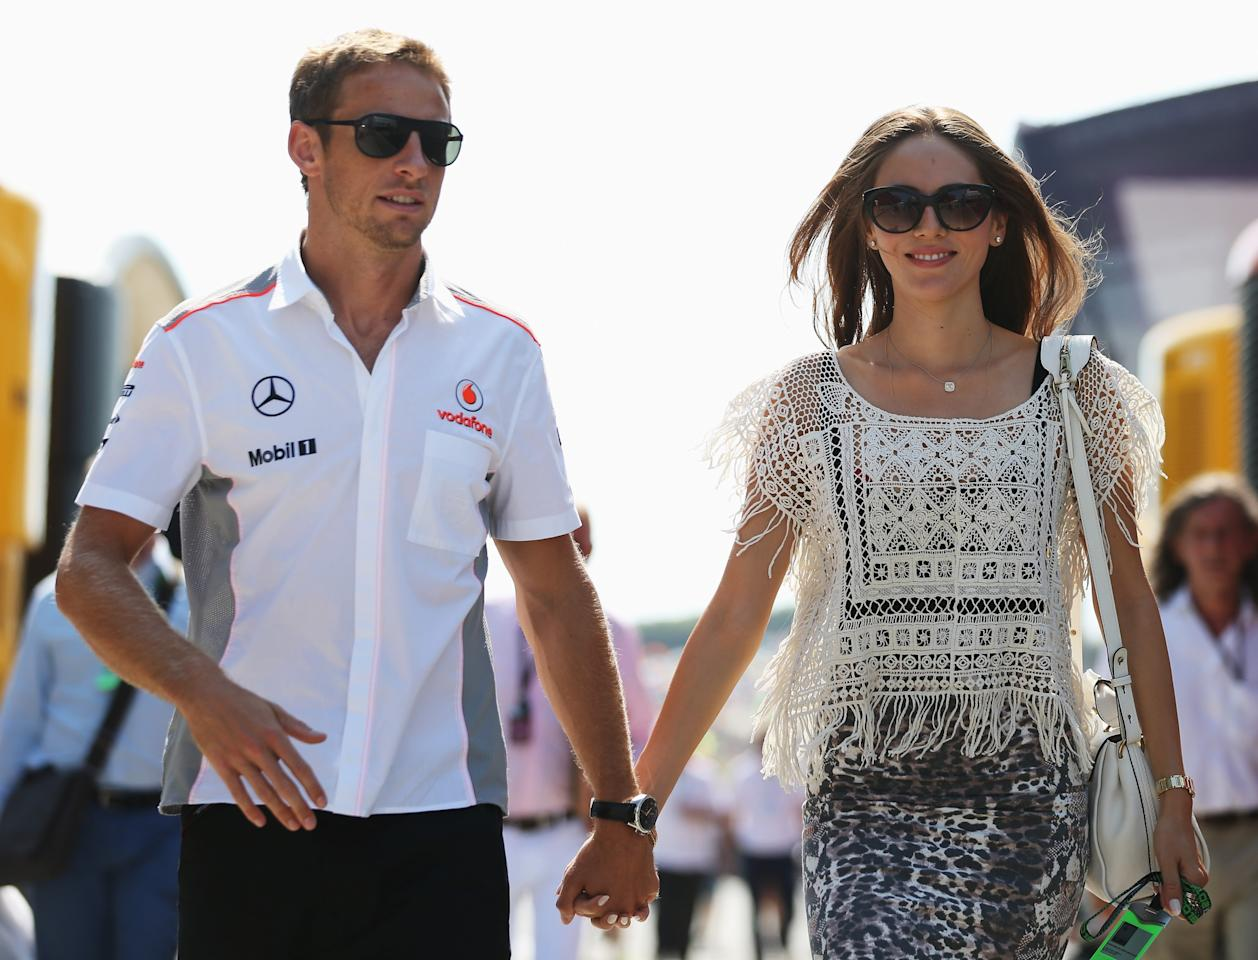 BUDAPEST, HUNGARY - JULY 28: Jenson Button of Great Britain and McLaren and his girlfriend Jessica Michibata arrive in the paddock before the Hungarian Formula One Grand Prix at Hungaroring on July 28, 2013 in Budapest, Hungary. (Photo by Mark Thompson/Getty Images)